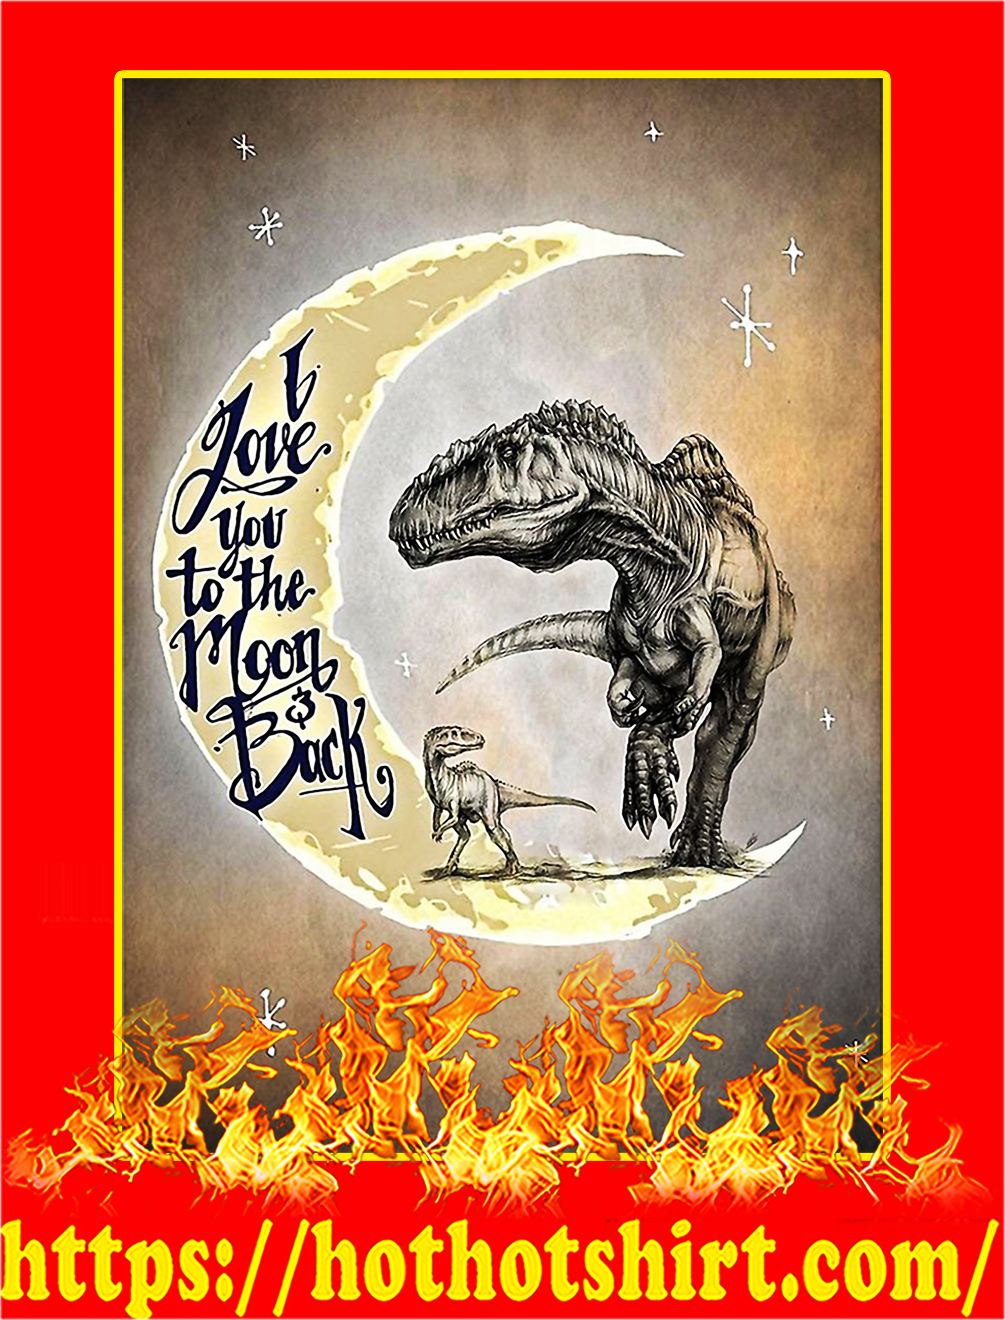 Dinosaurs I Love You To The Moon And Back Poster - A3